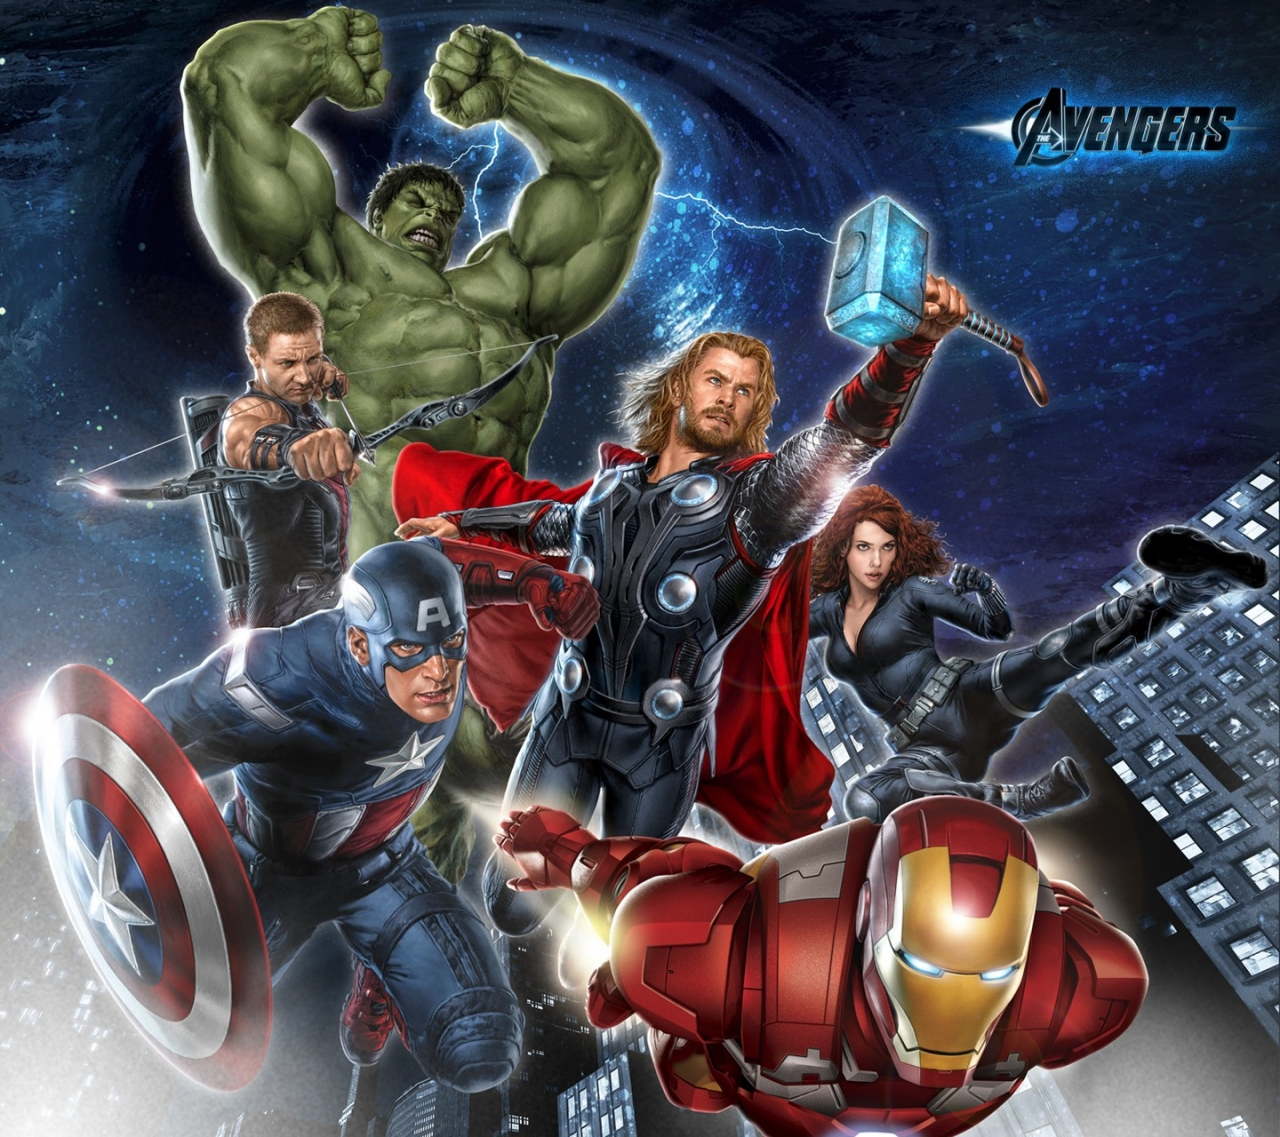 "photo ""the avengers hd"" in the album ""movie wallpapers""djakrse"